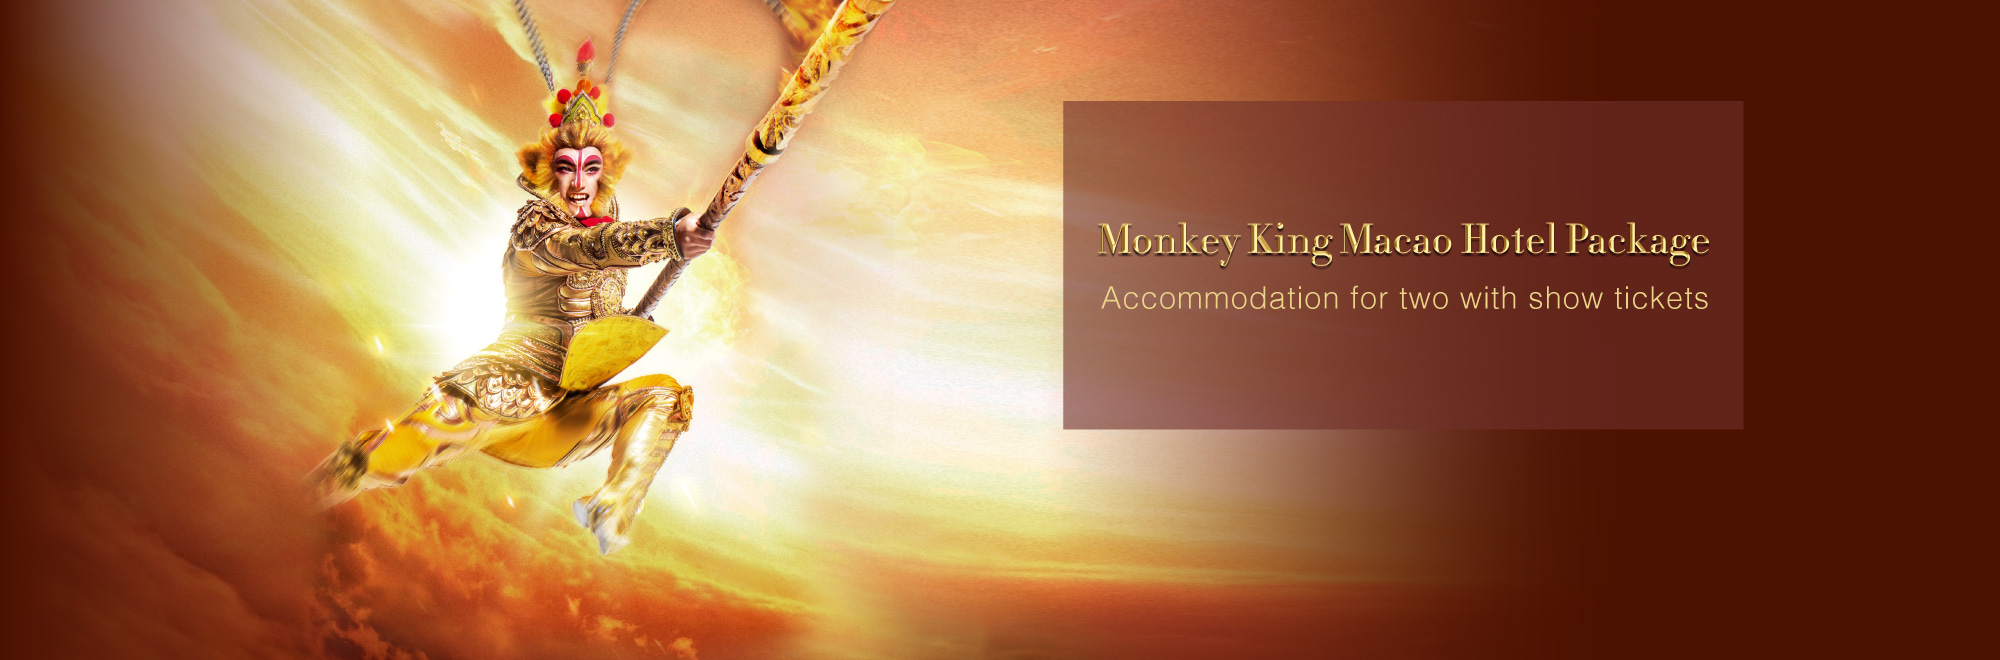 Monkey King Macao Hotel 패키지